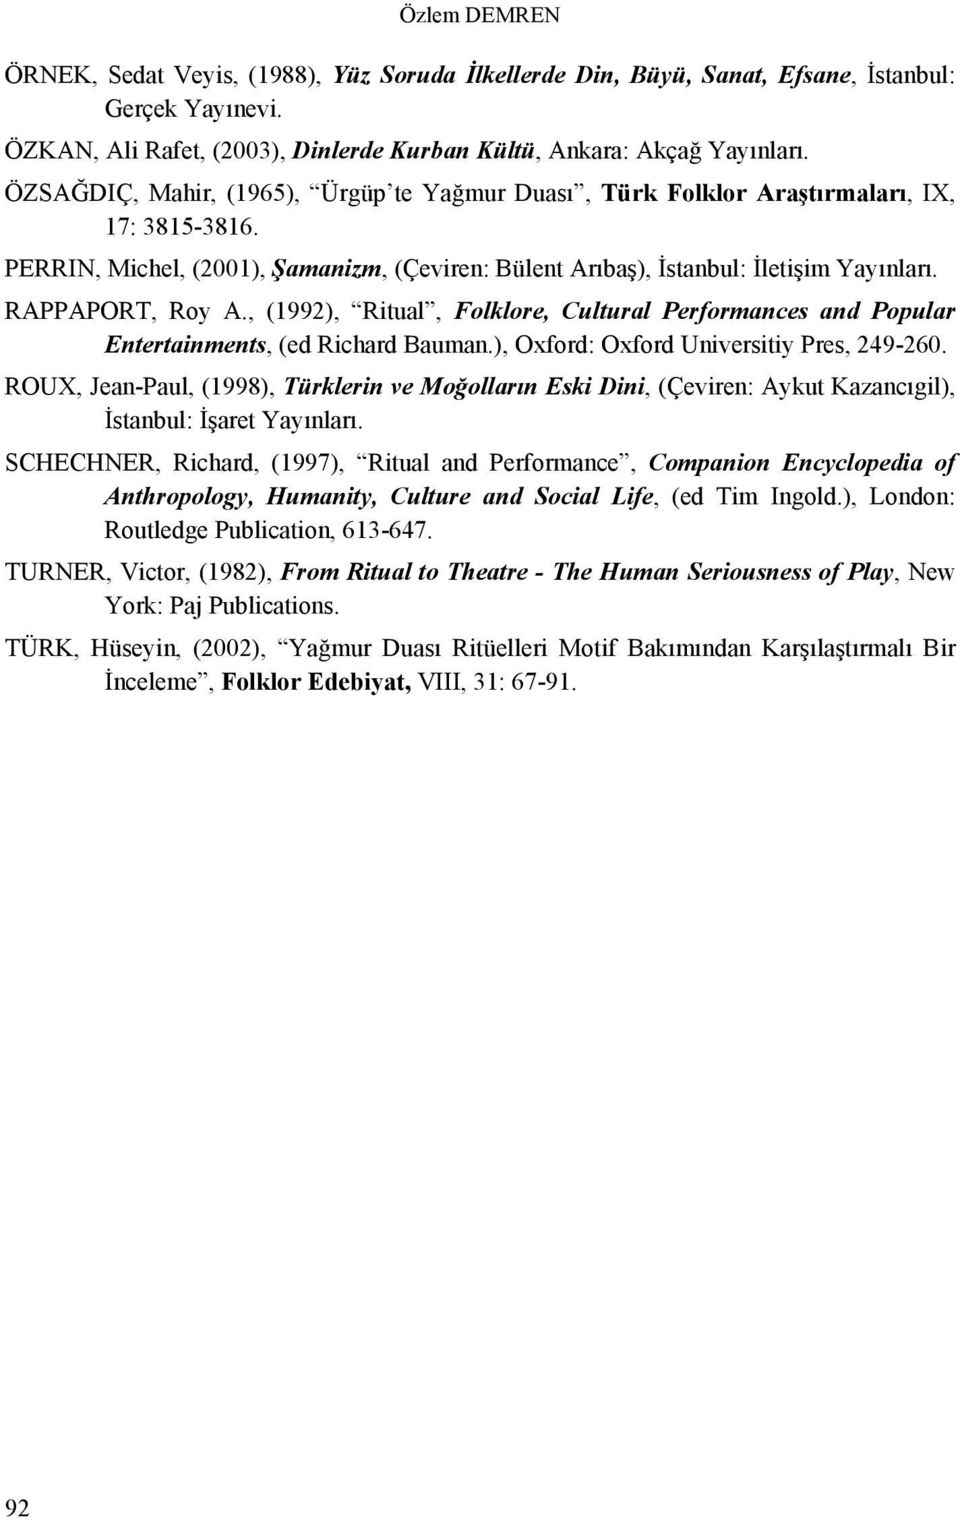 RAPPAPORT, Roy A., (1992), Ritual, Folklore, Cultural Performances and Popular Entertainments, (ed Richard Bauman.), Oxford: Oxford Universitiy Pres, 249-260.